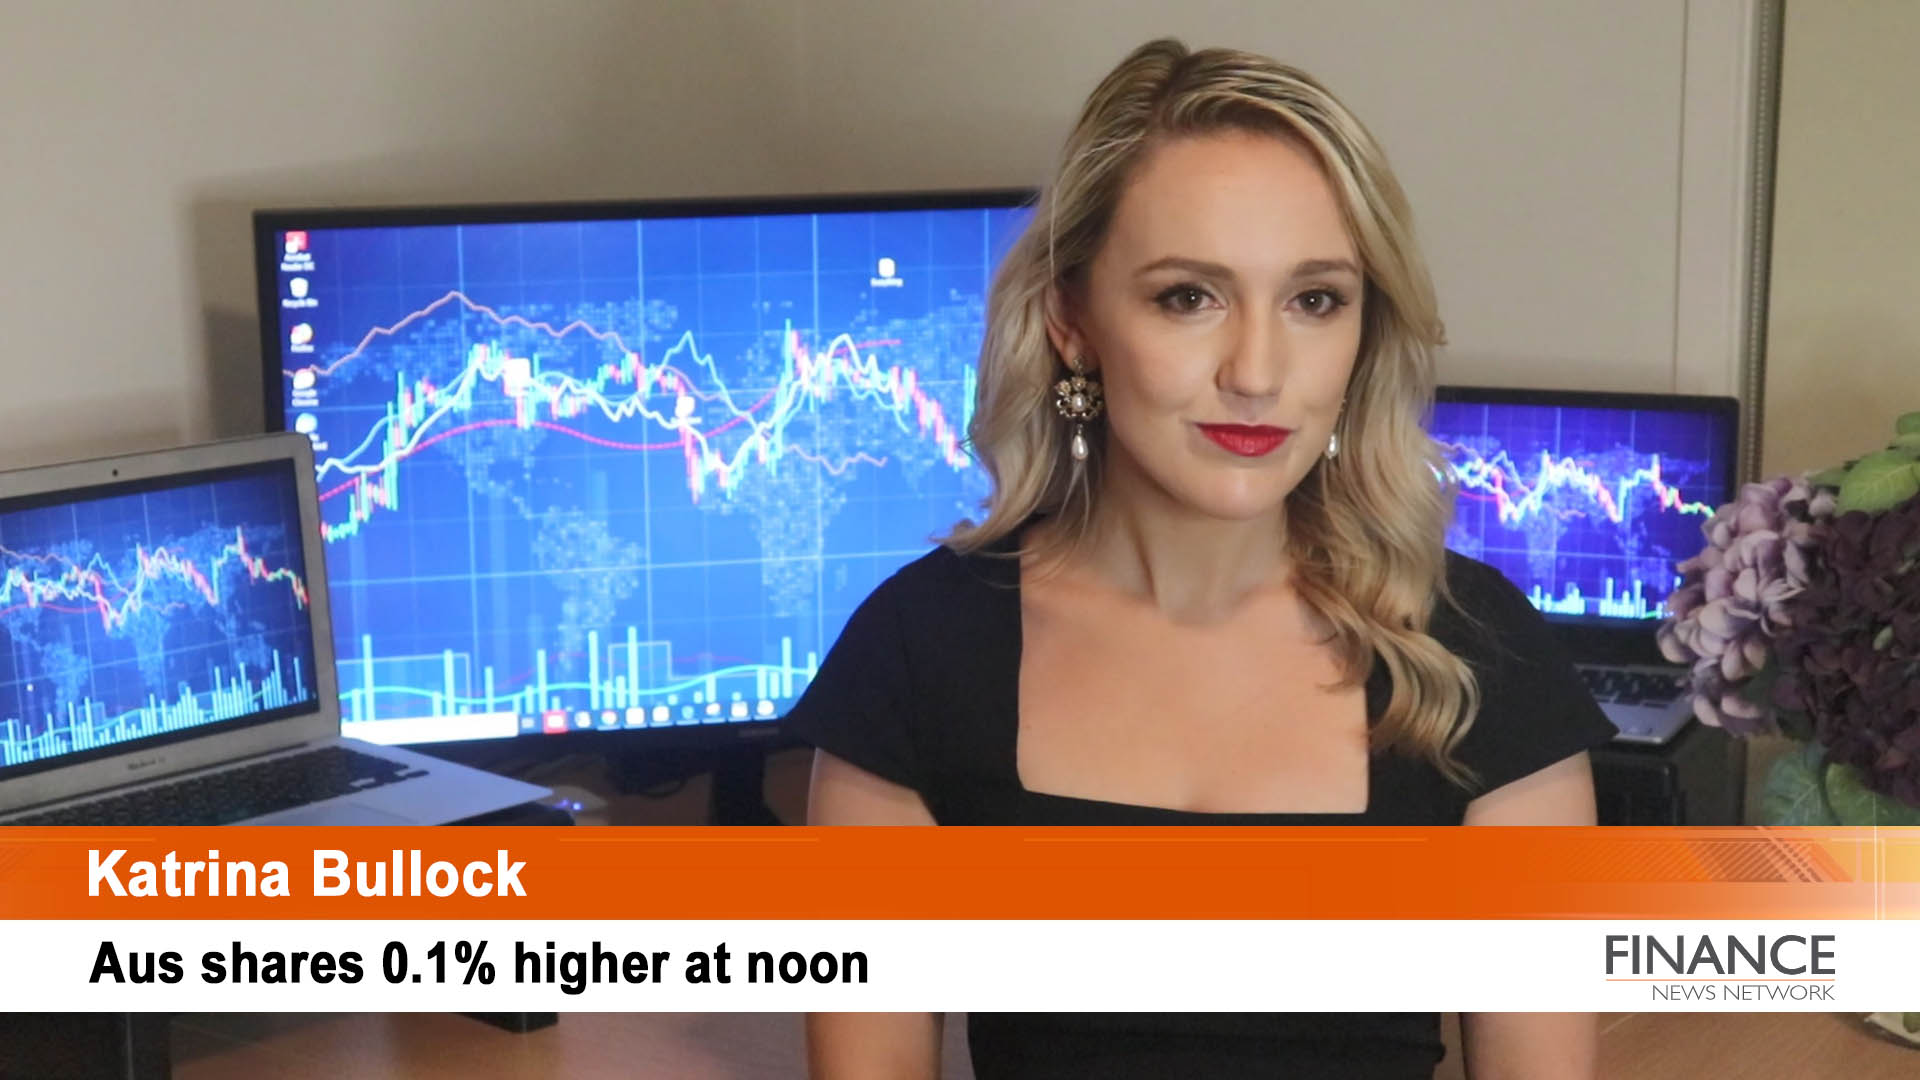 Strong start stunted by trade data: Aus shares 0.1% higher at noon